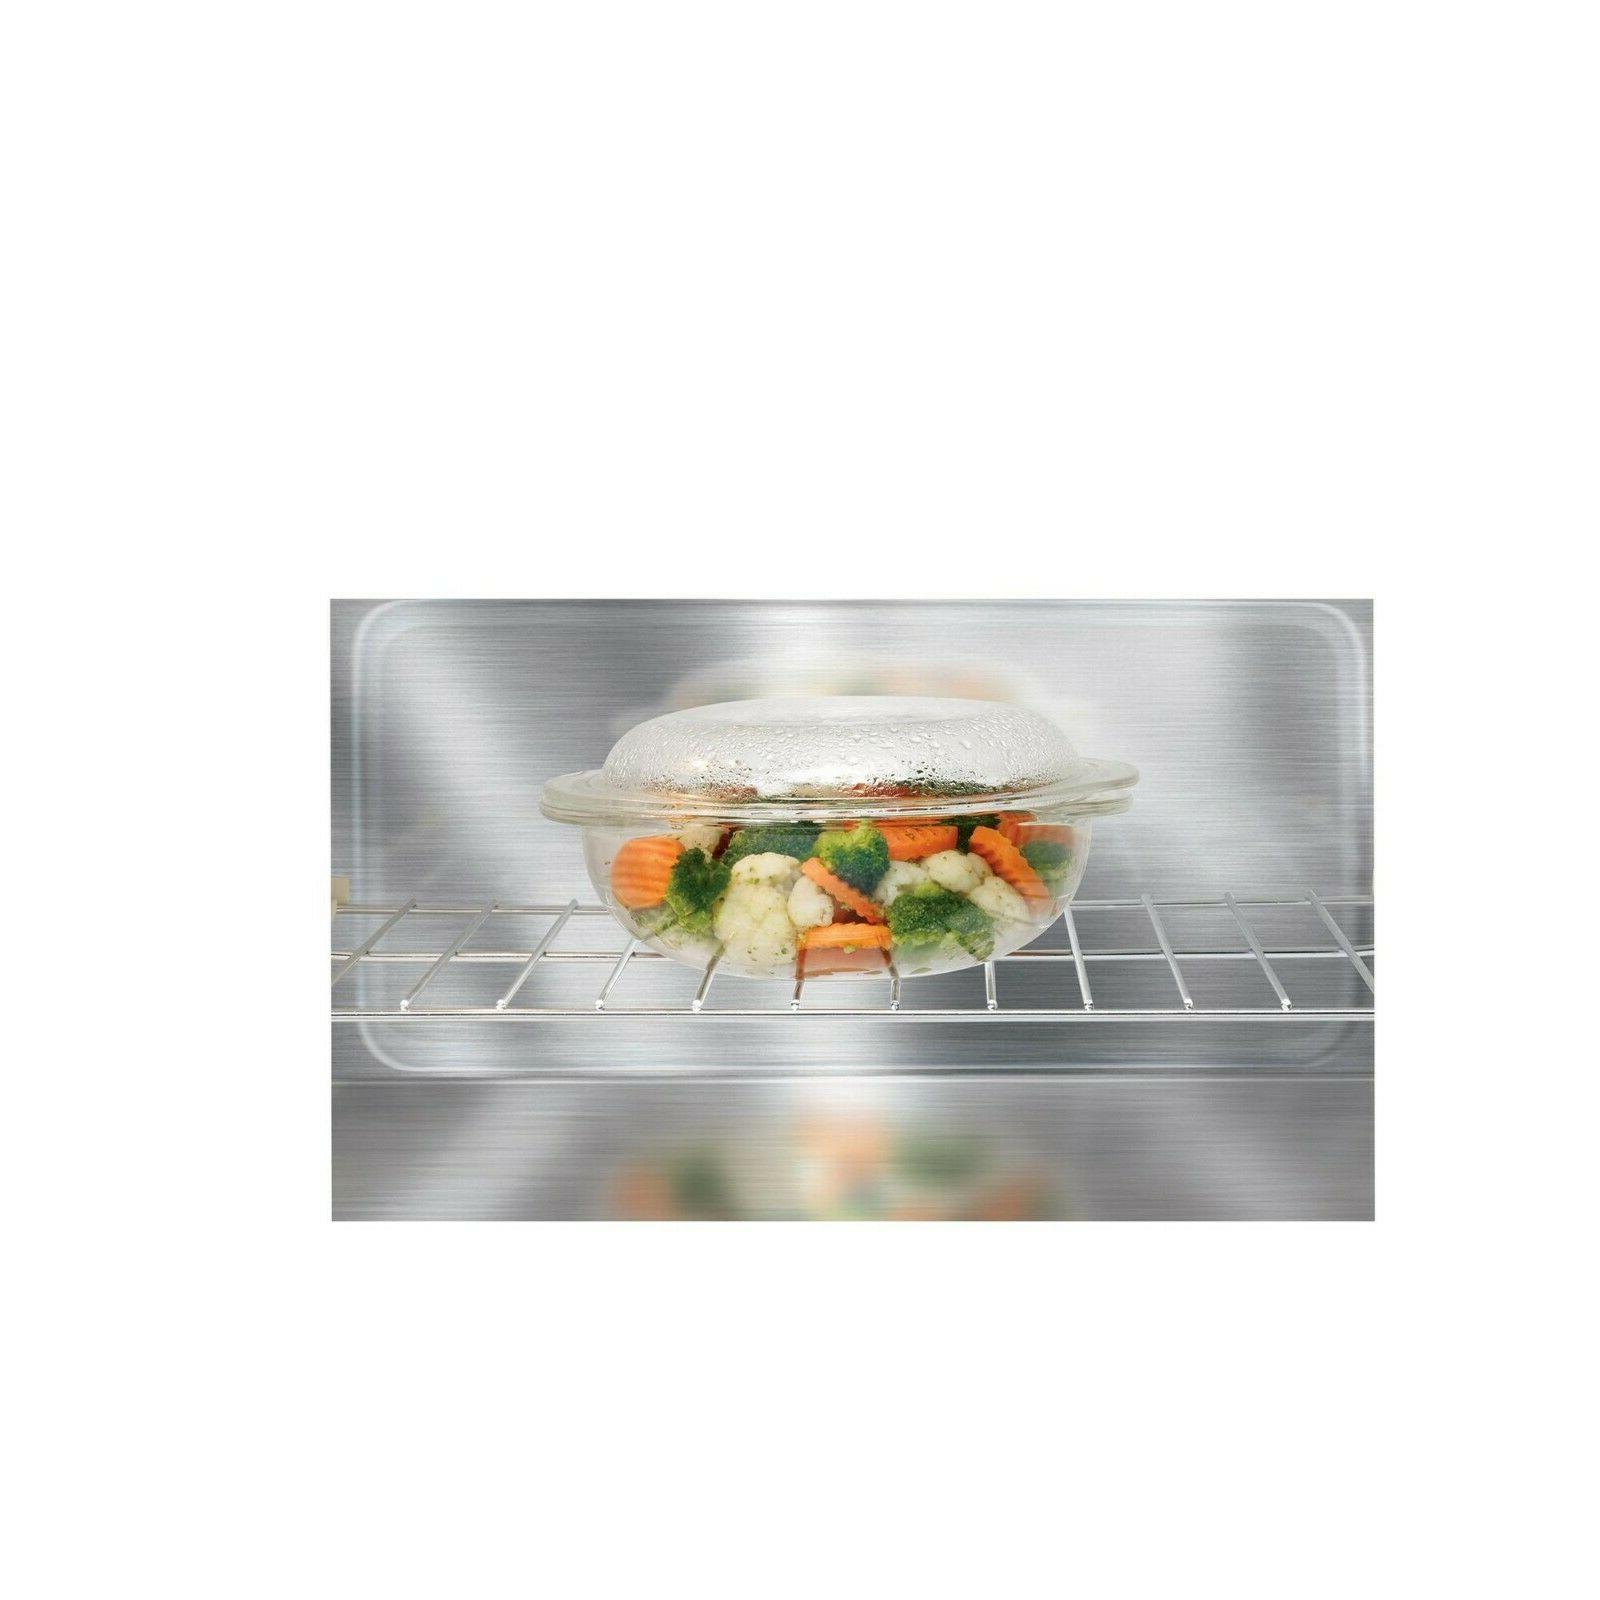 Electrolux Built-in Convection Oven Kit not